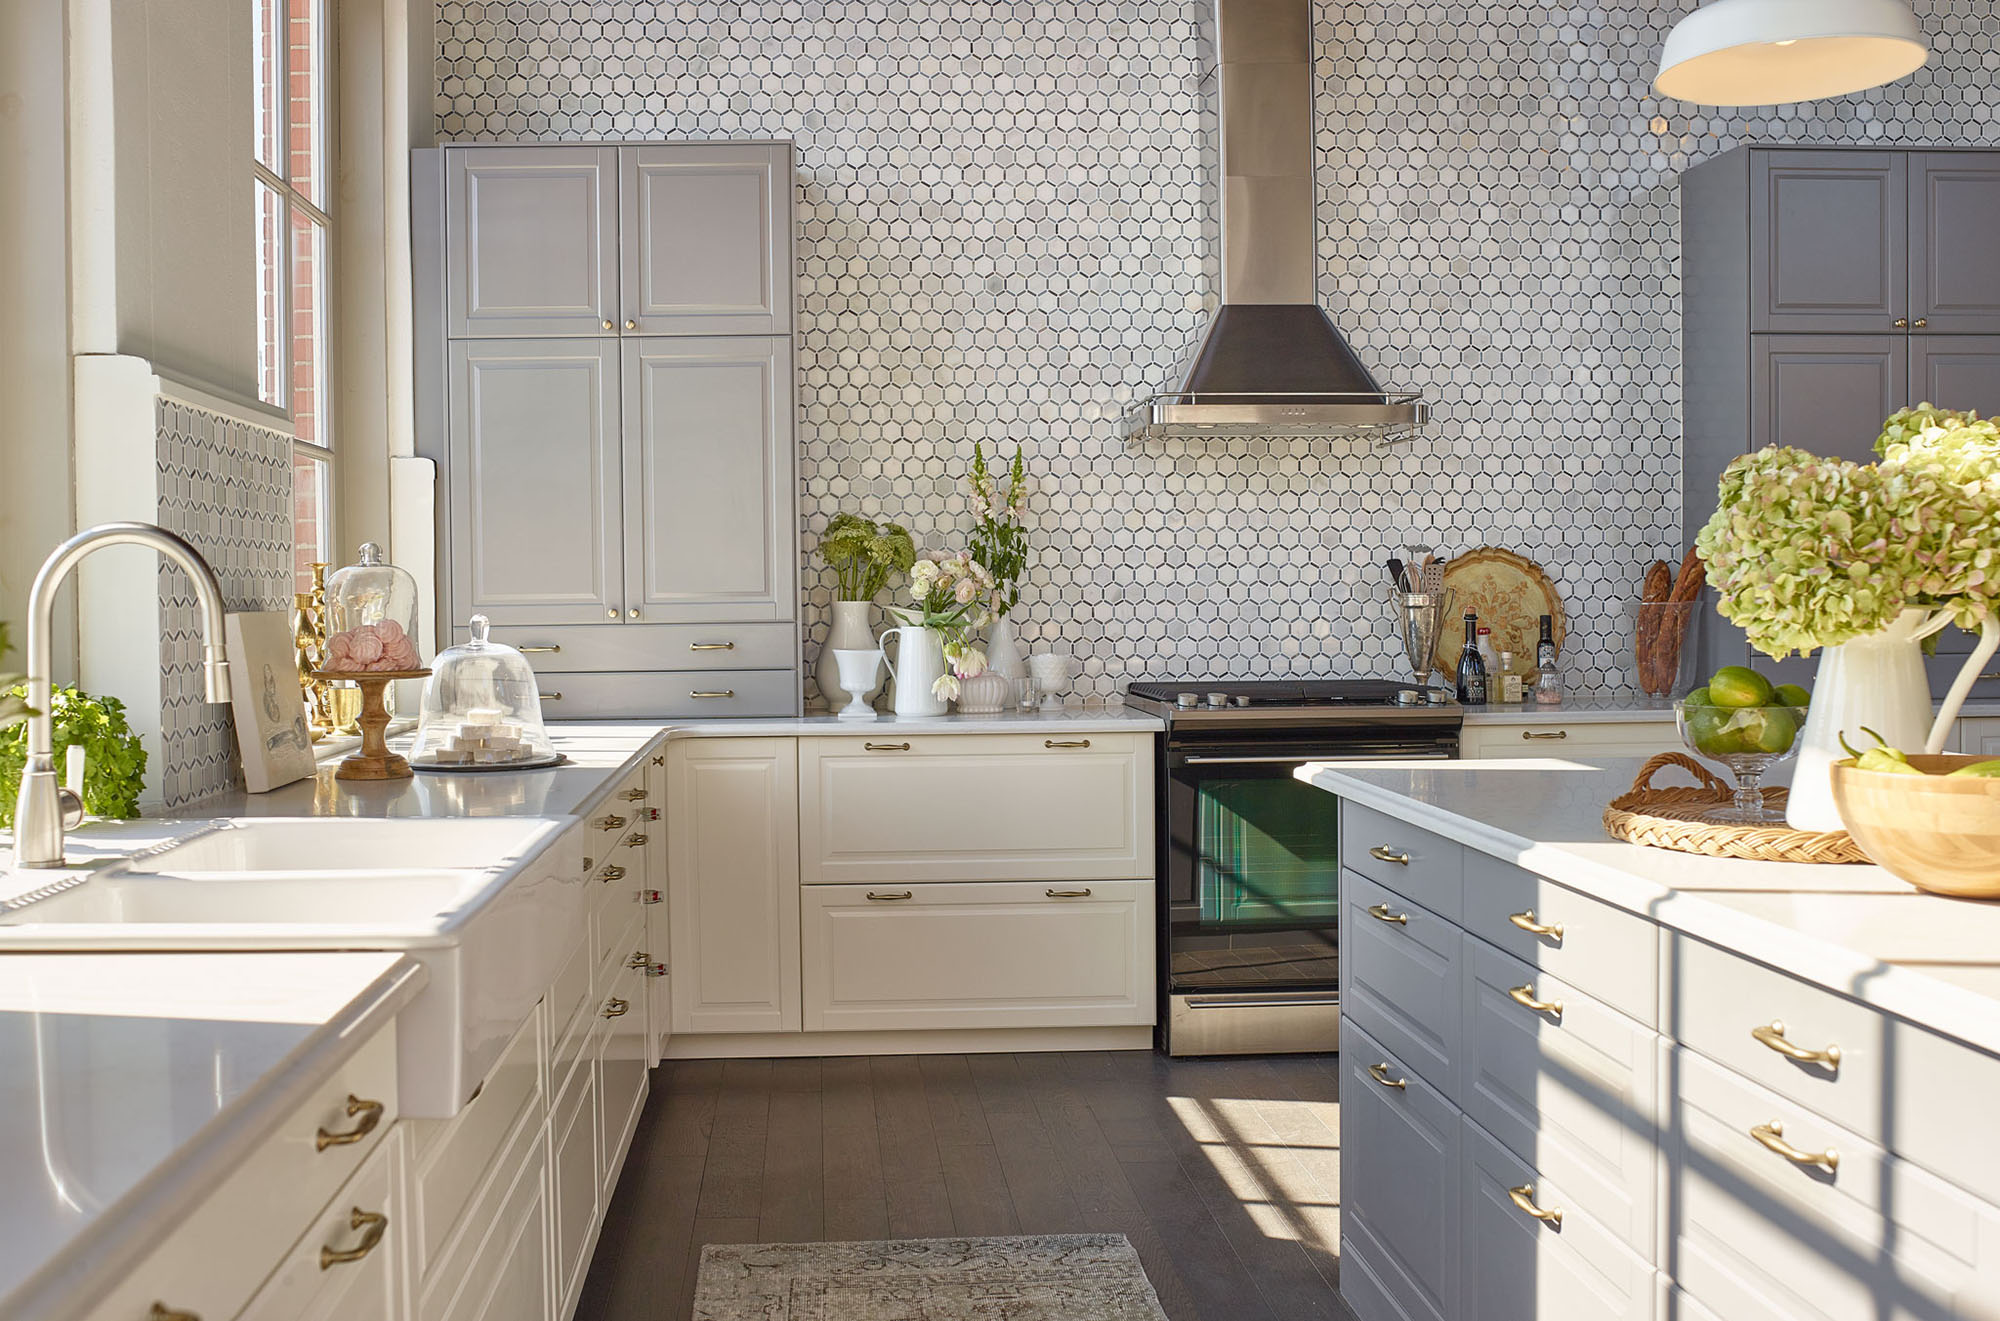 Create Your Designers Kitchen Using IKEA Cabinets In 10